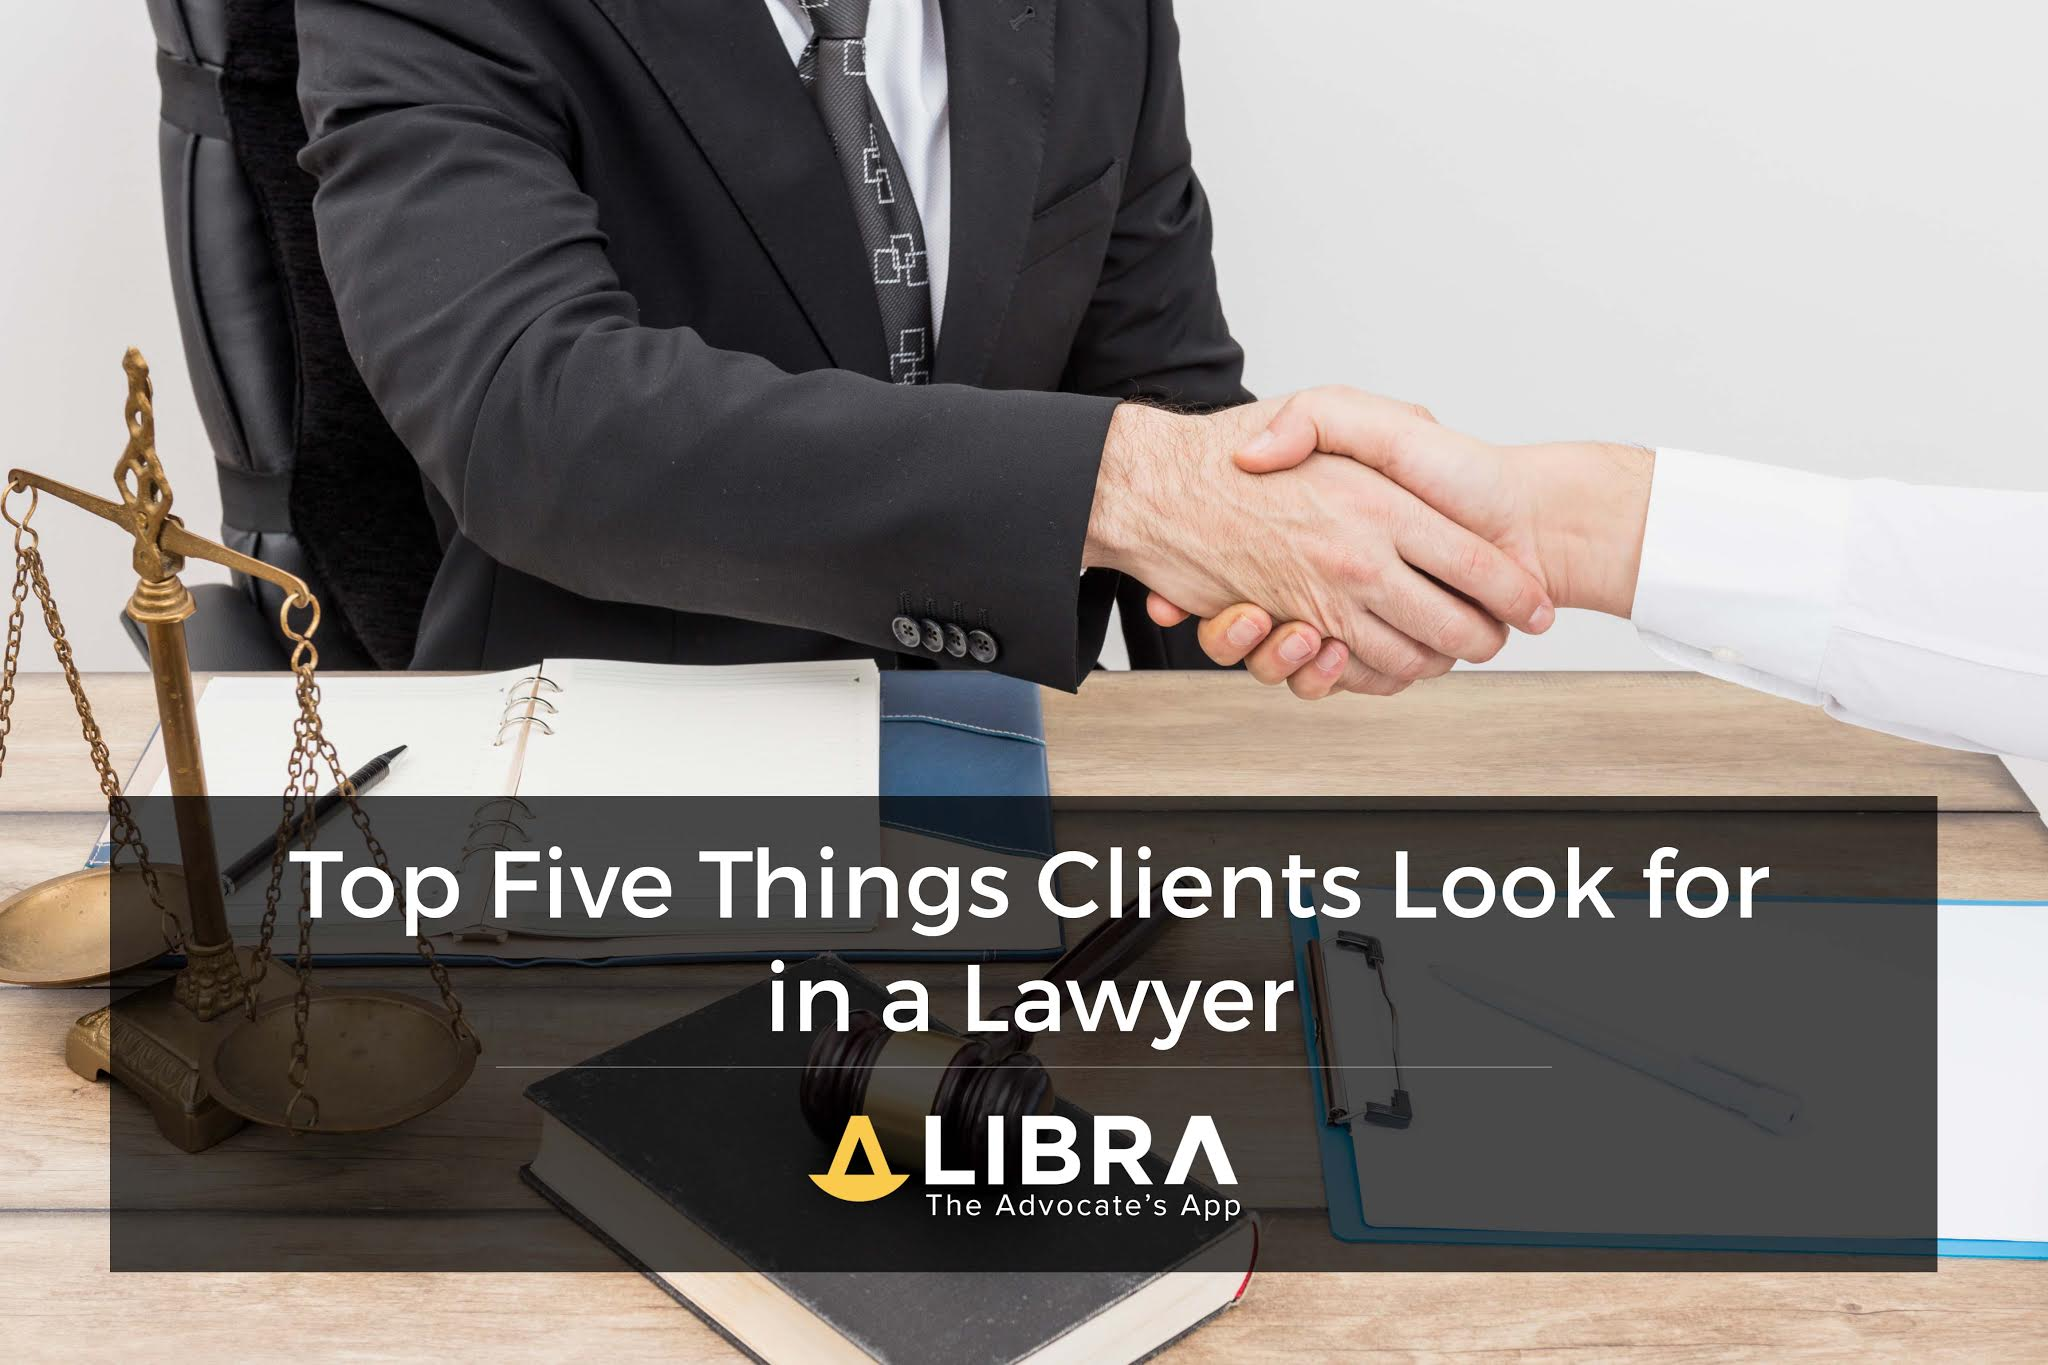 Clients & lawyers